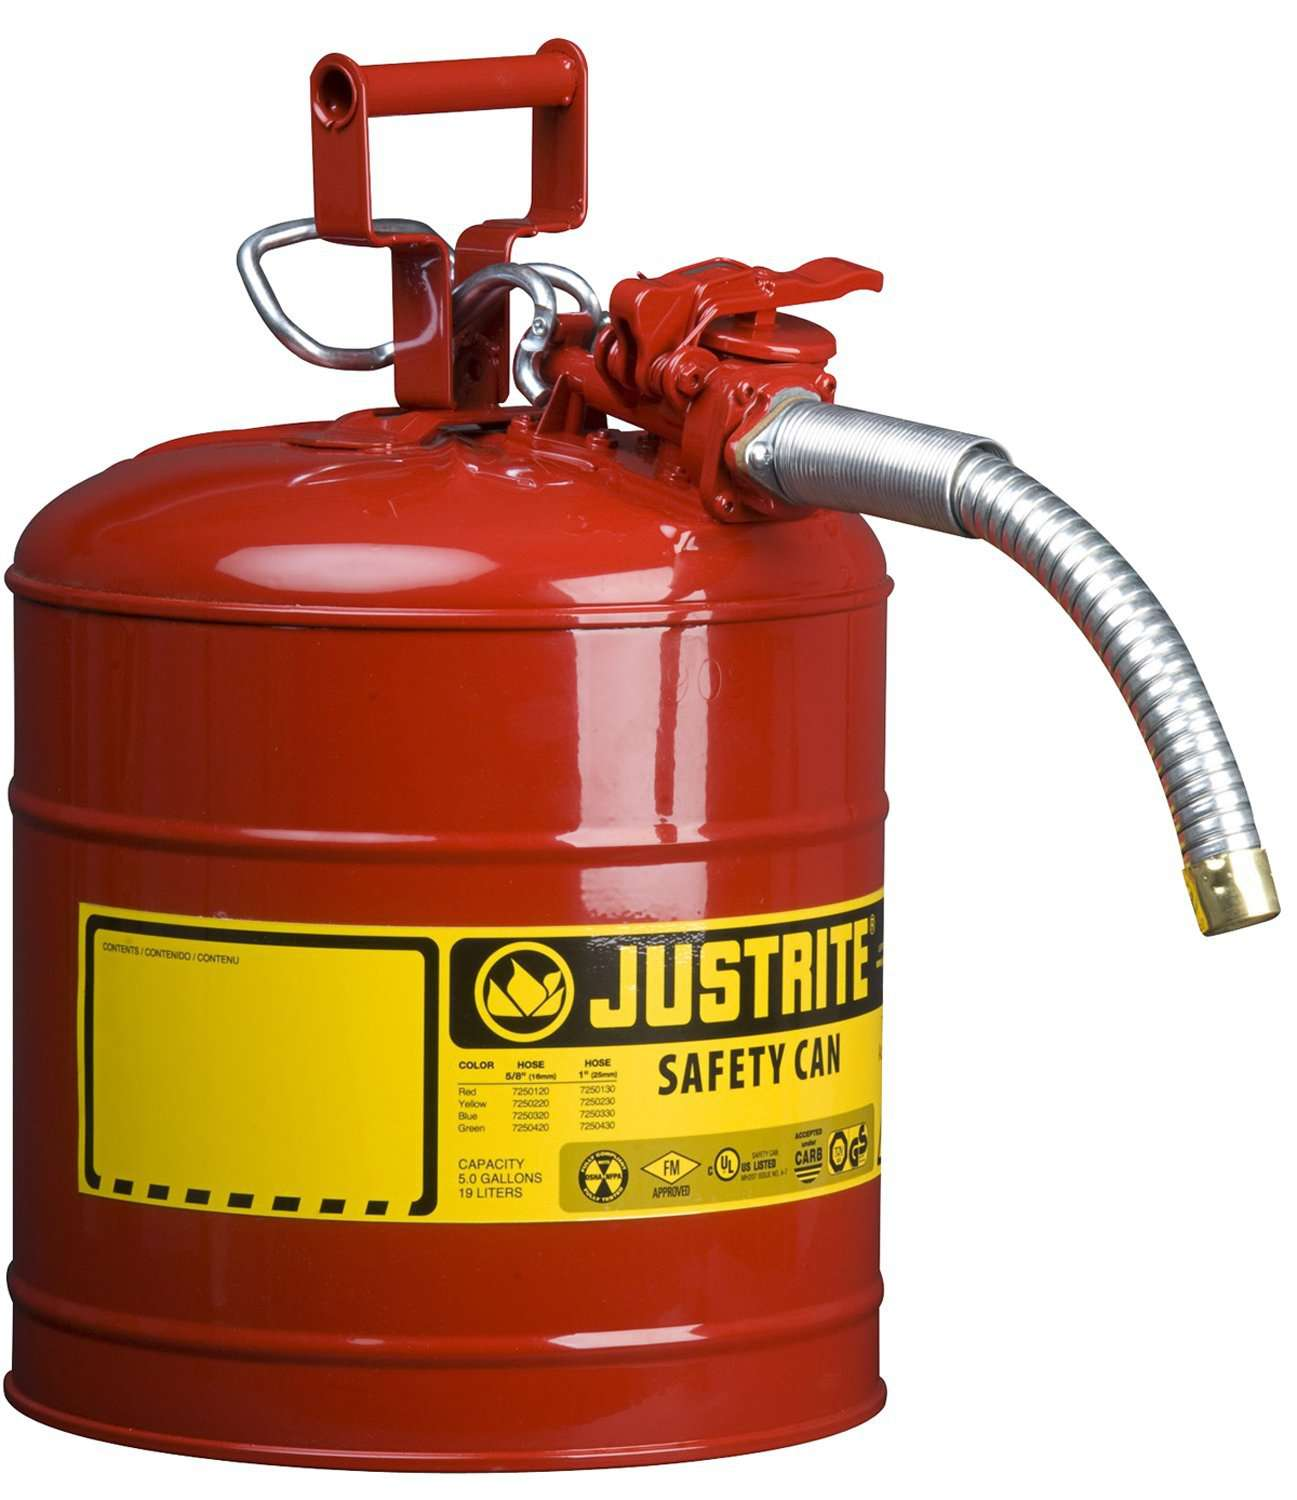 justrite-safety-can